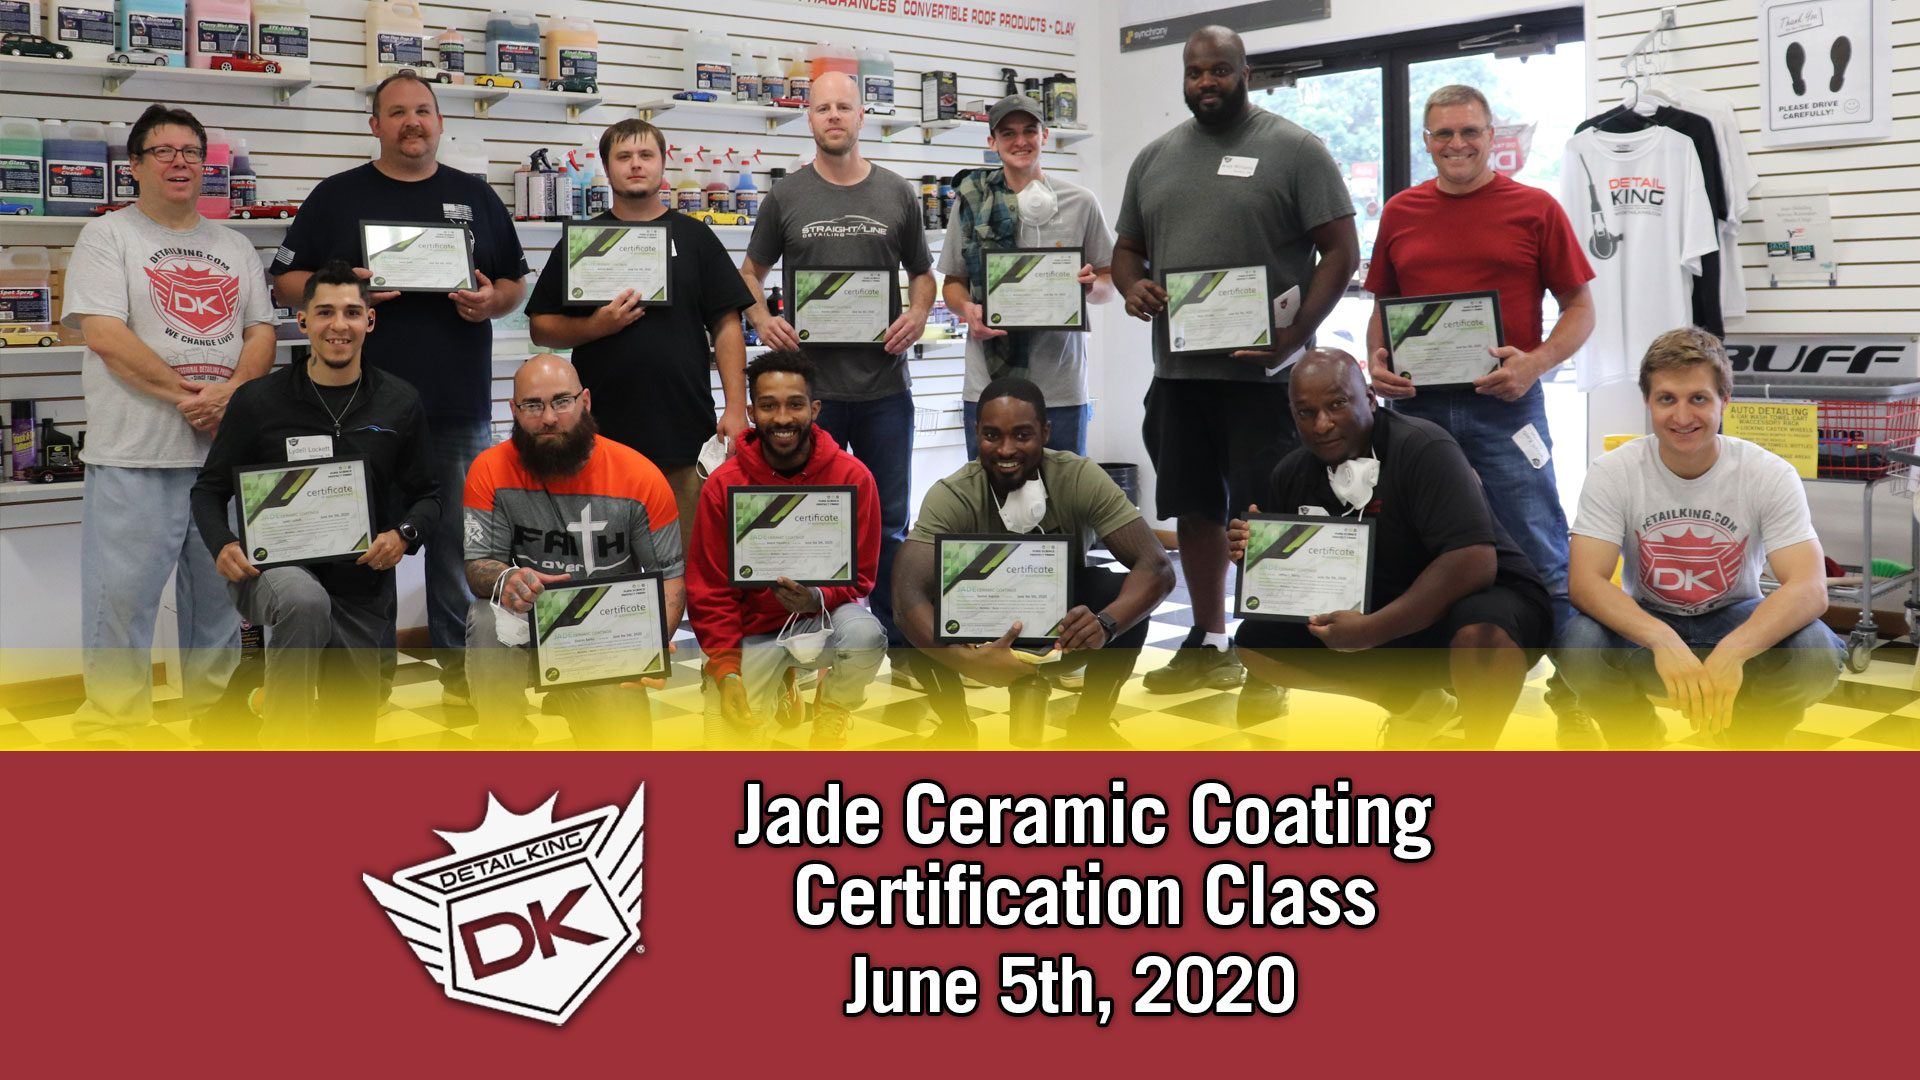 Detail King's Jade Ceramic Coating Class! June 5th, 2020